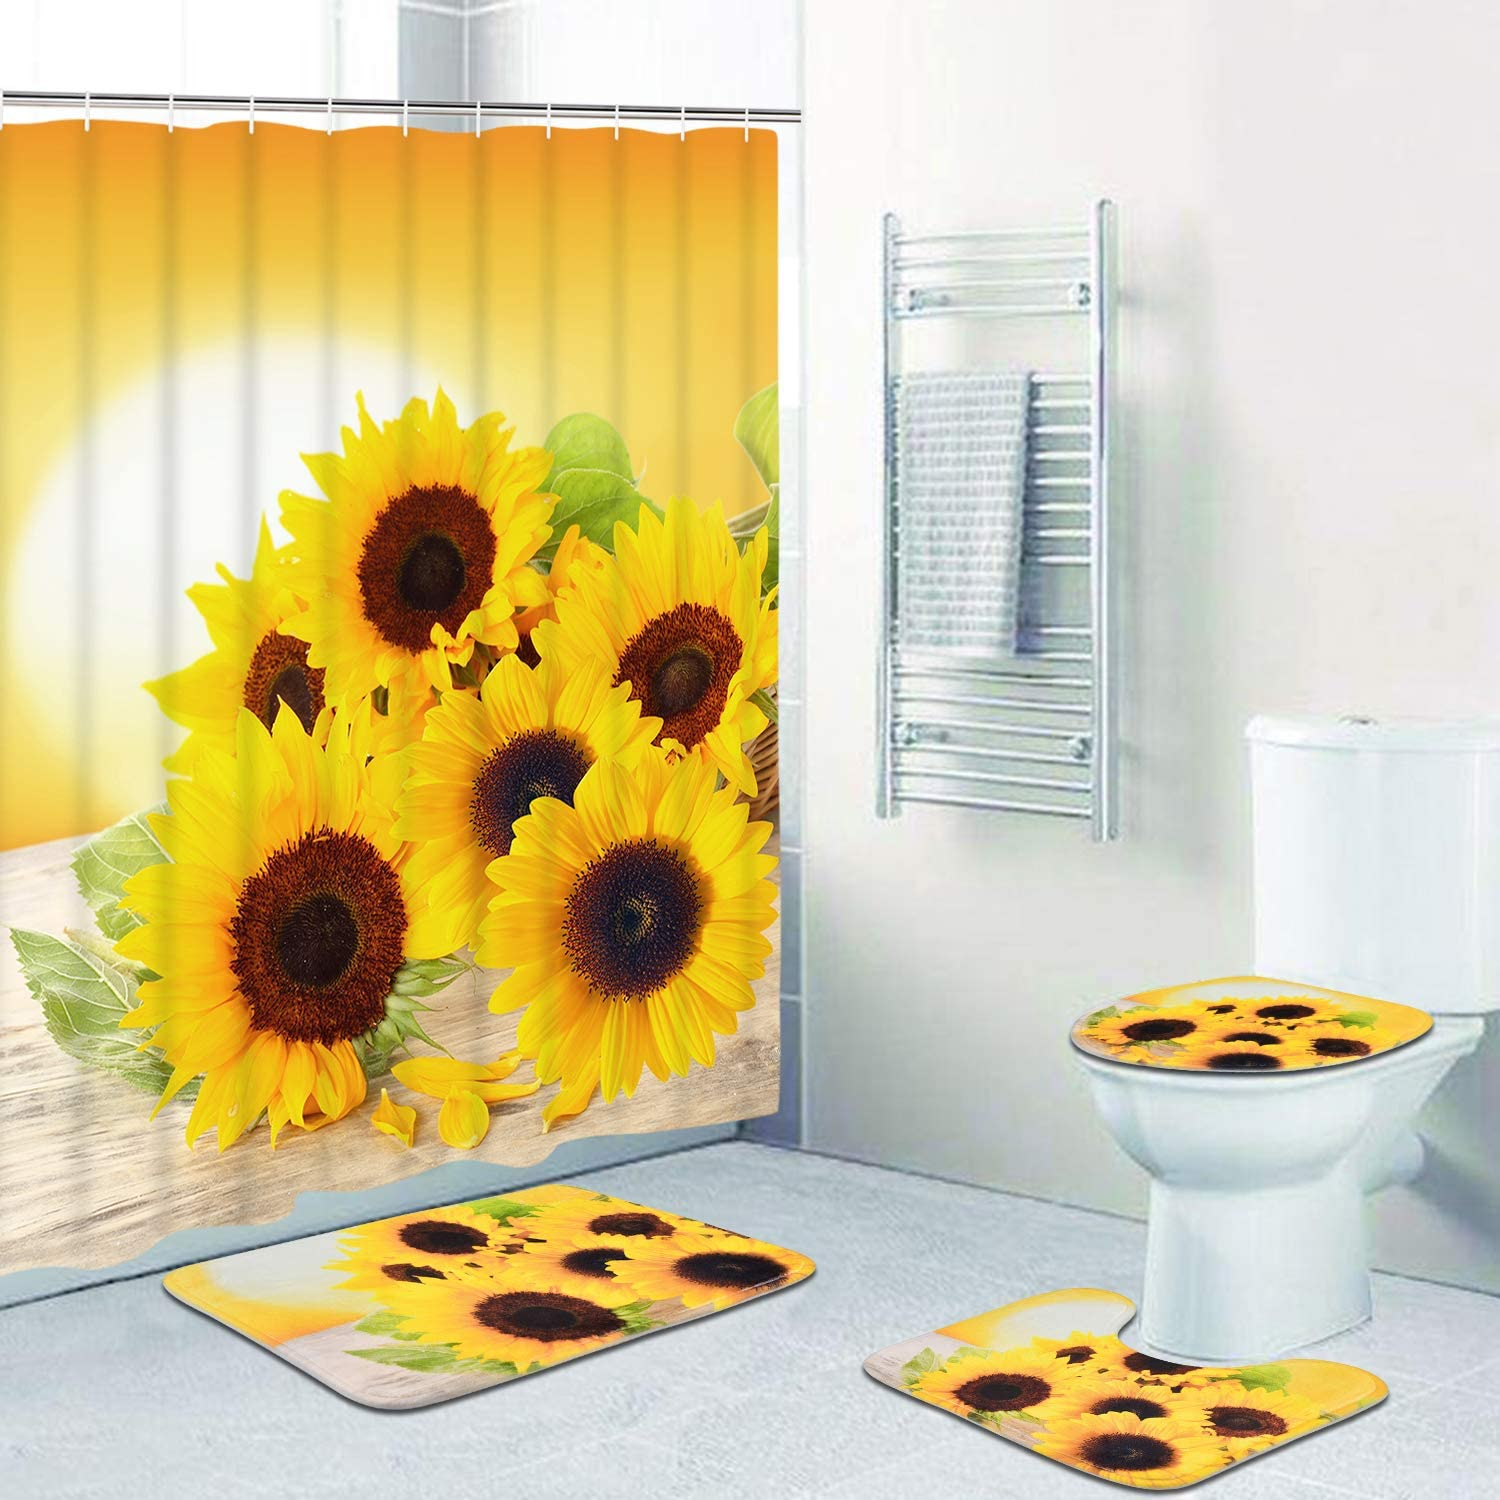 Sunflower Polyester Shower Curtain Bath Mat Anti-Slip Pedestal Rug Toilet Cover